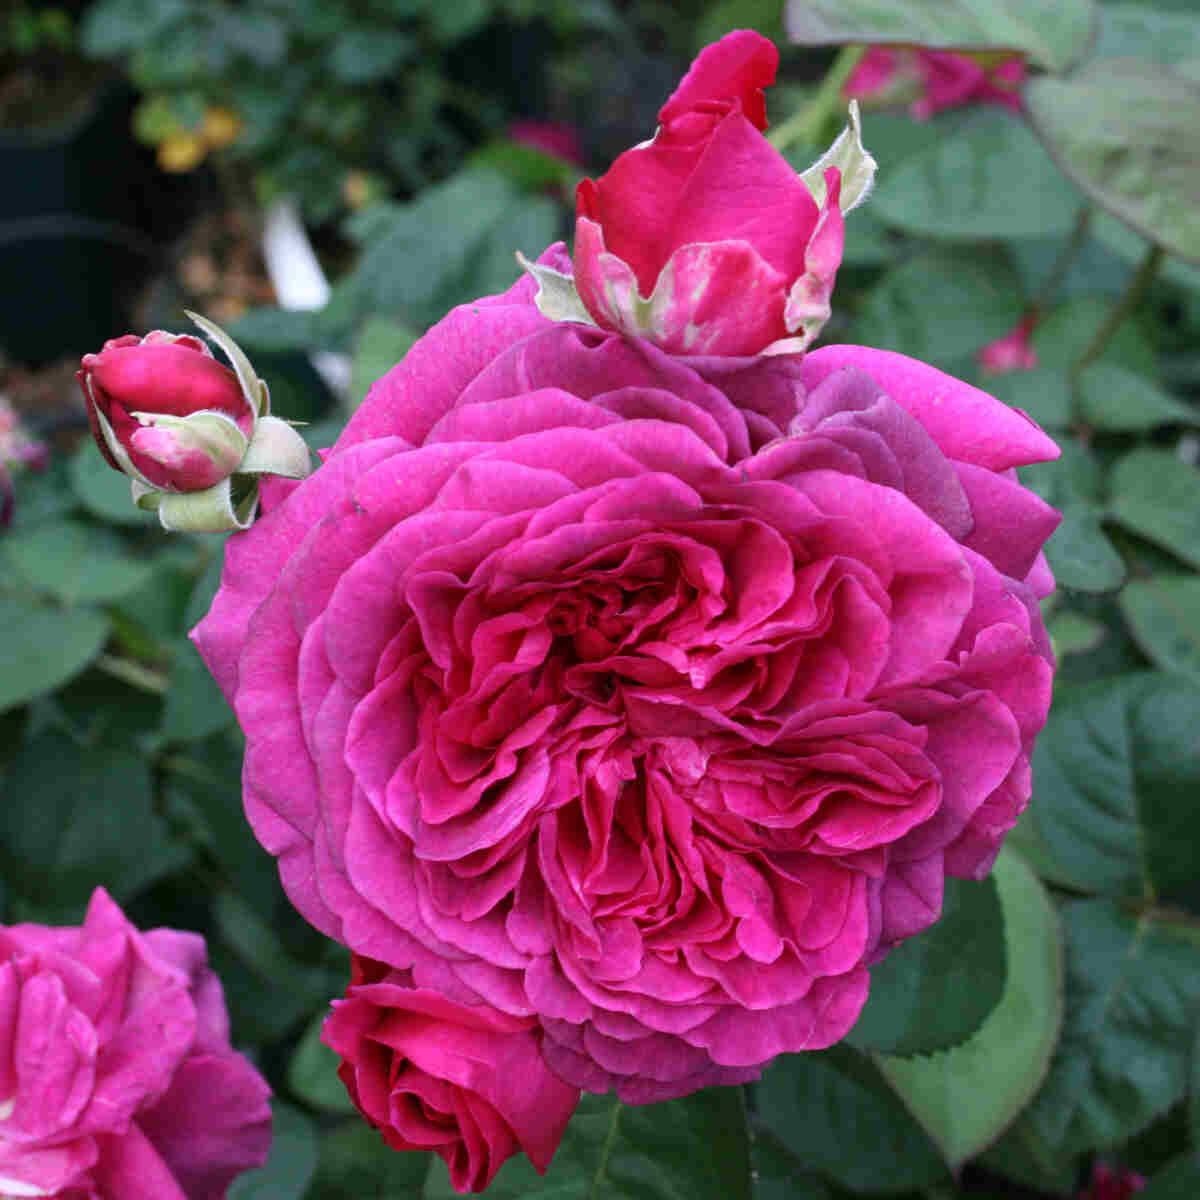 Rose 'Laudatio'